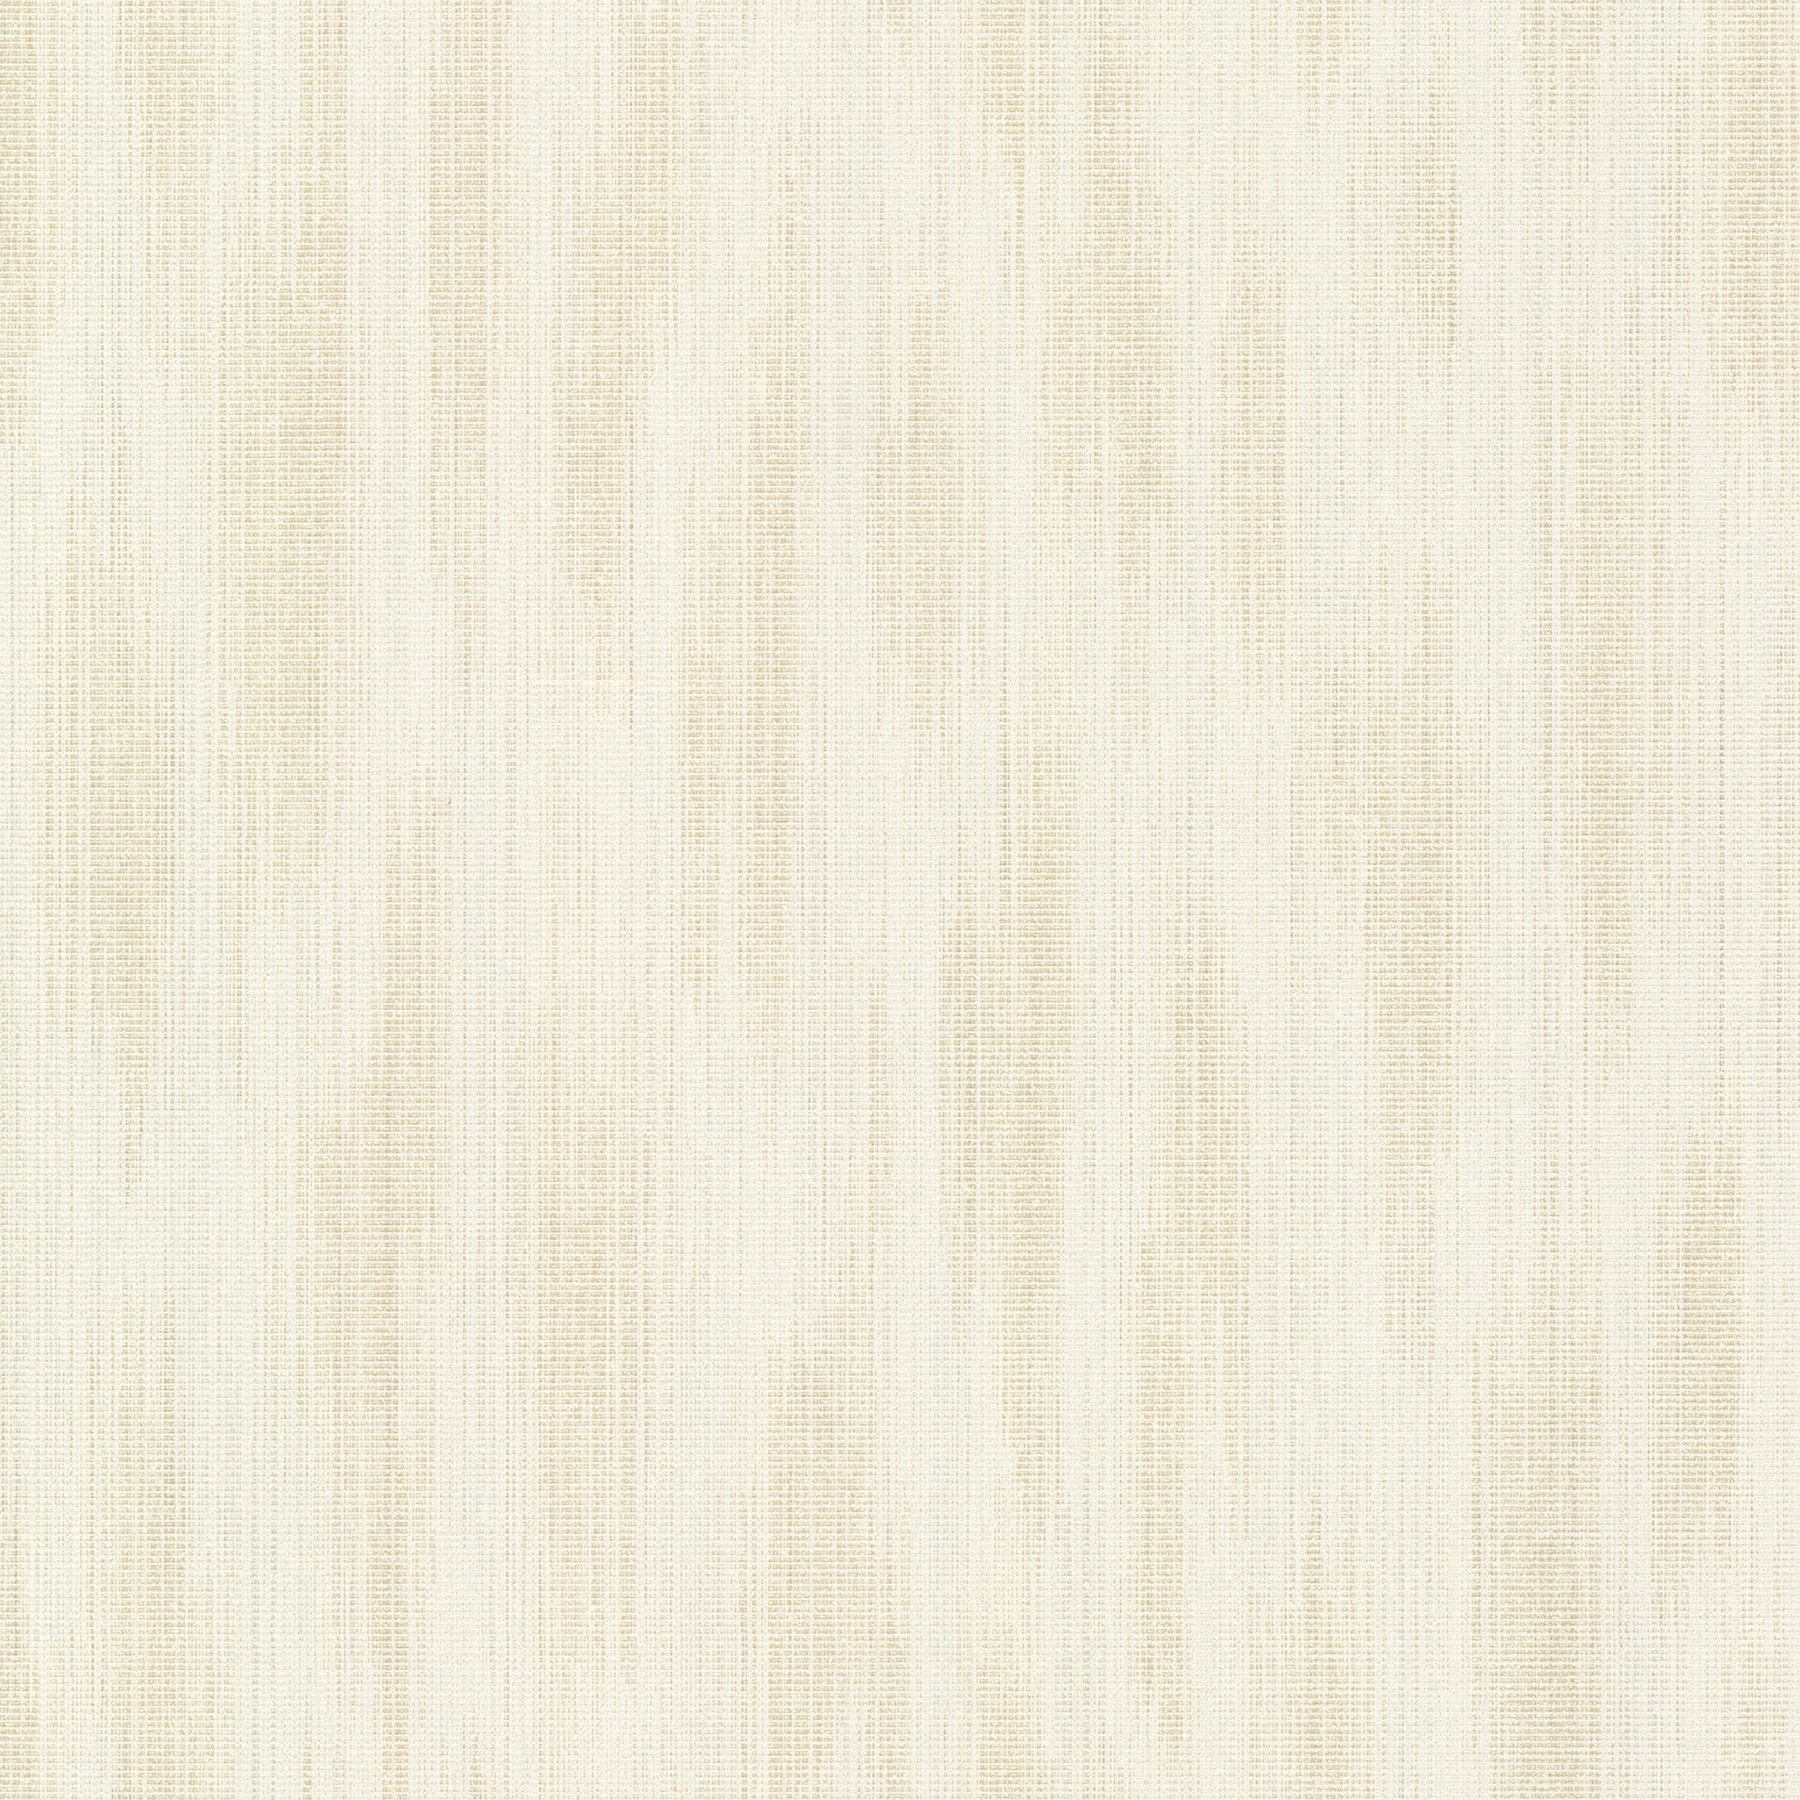 Picture of Blaise Beige Ombre Texture Wallpaper